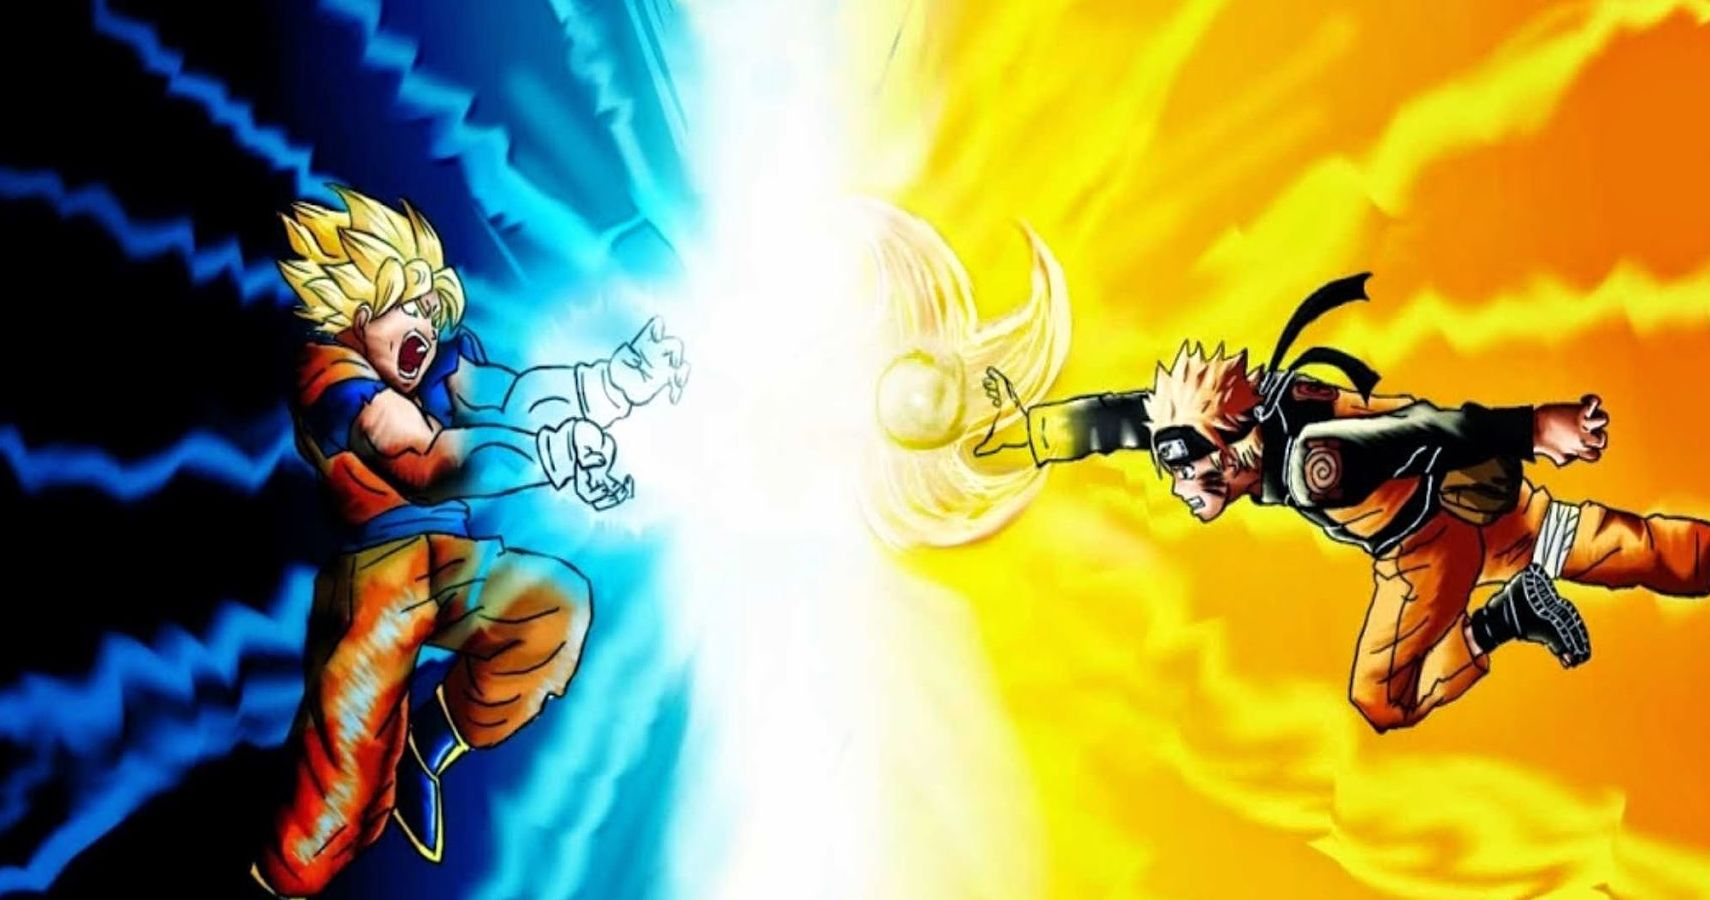 10 Reasons Why Goku Could Destroy Naruto (And 10 Why Naruto